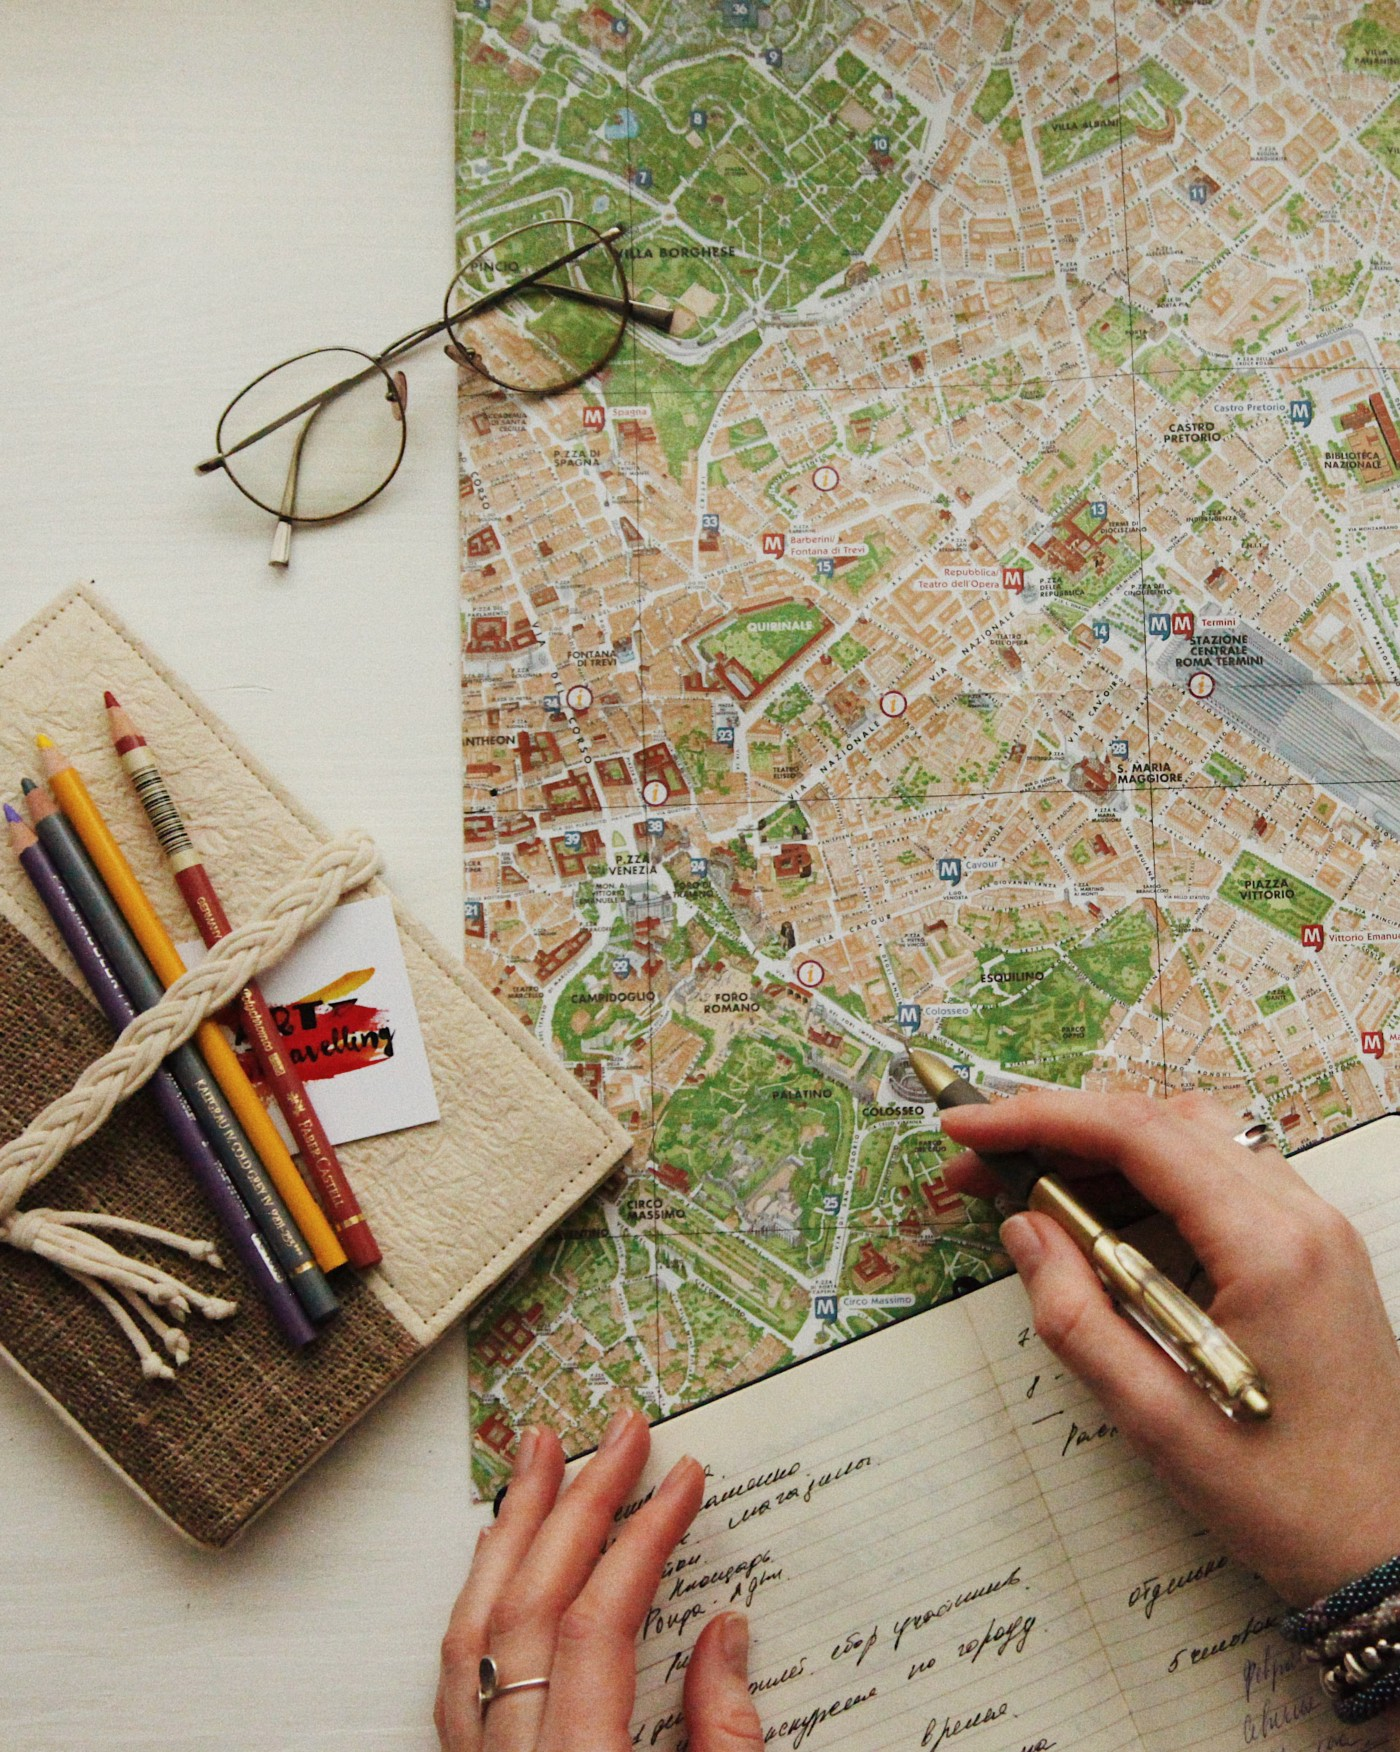 Photo by oxana v on Unsplash. Person with hand on streetmap.